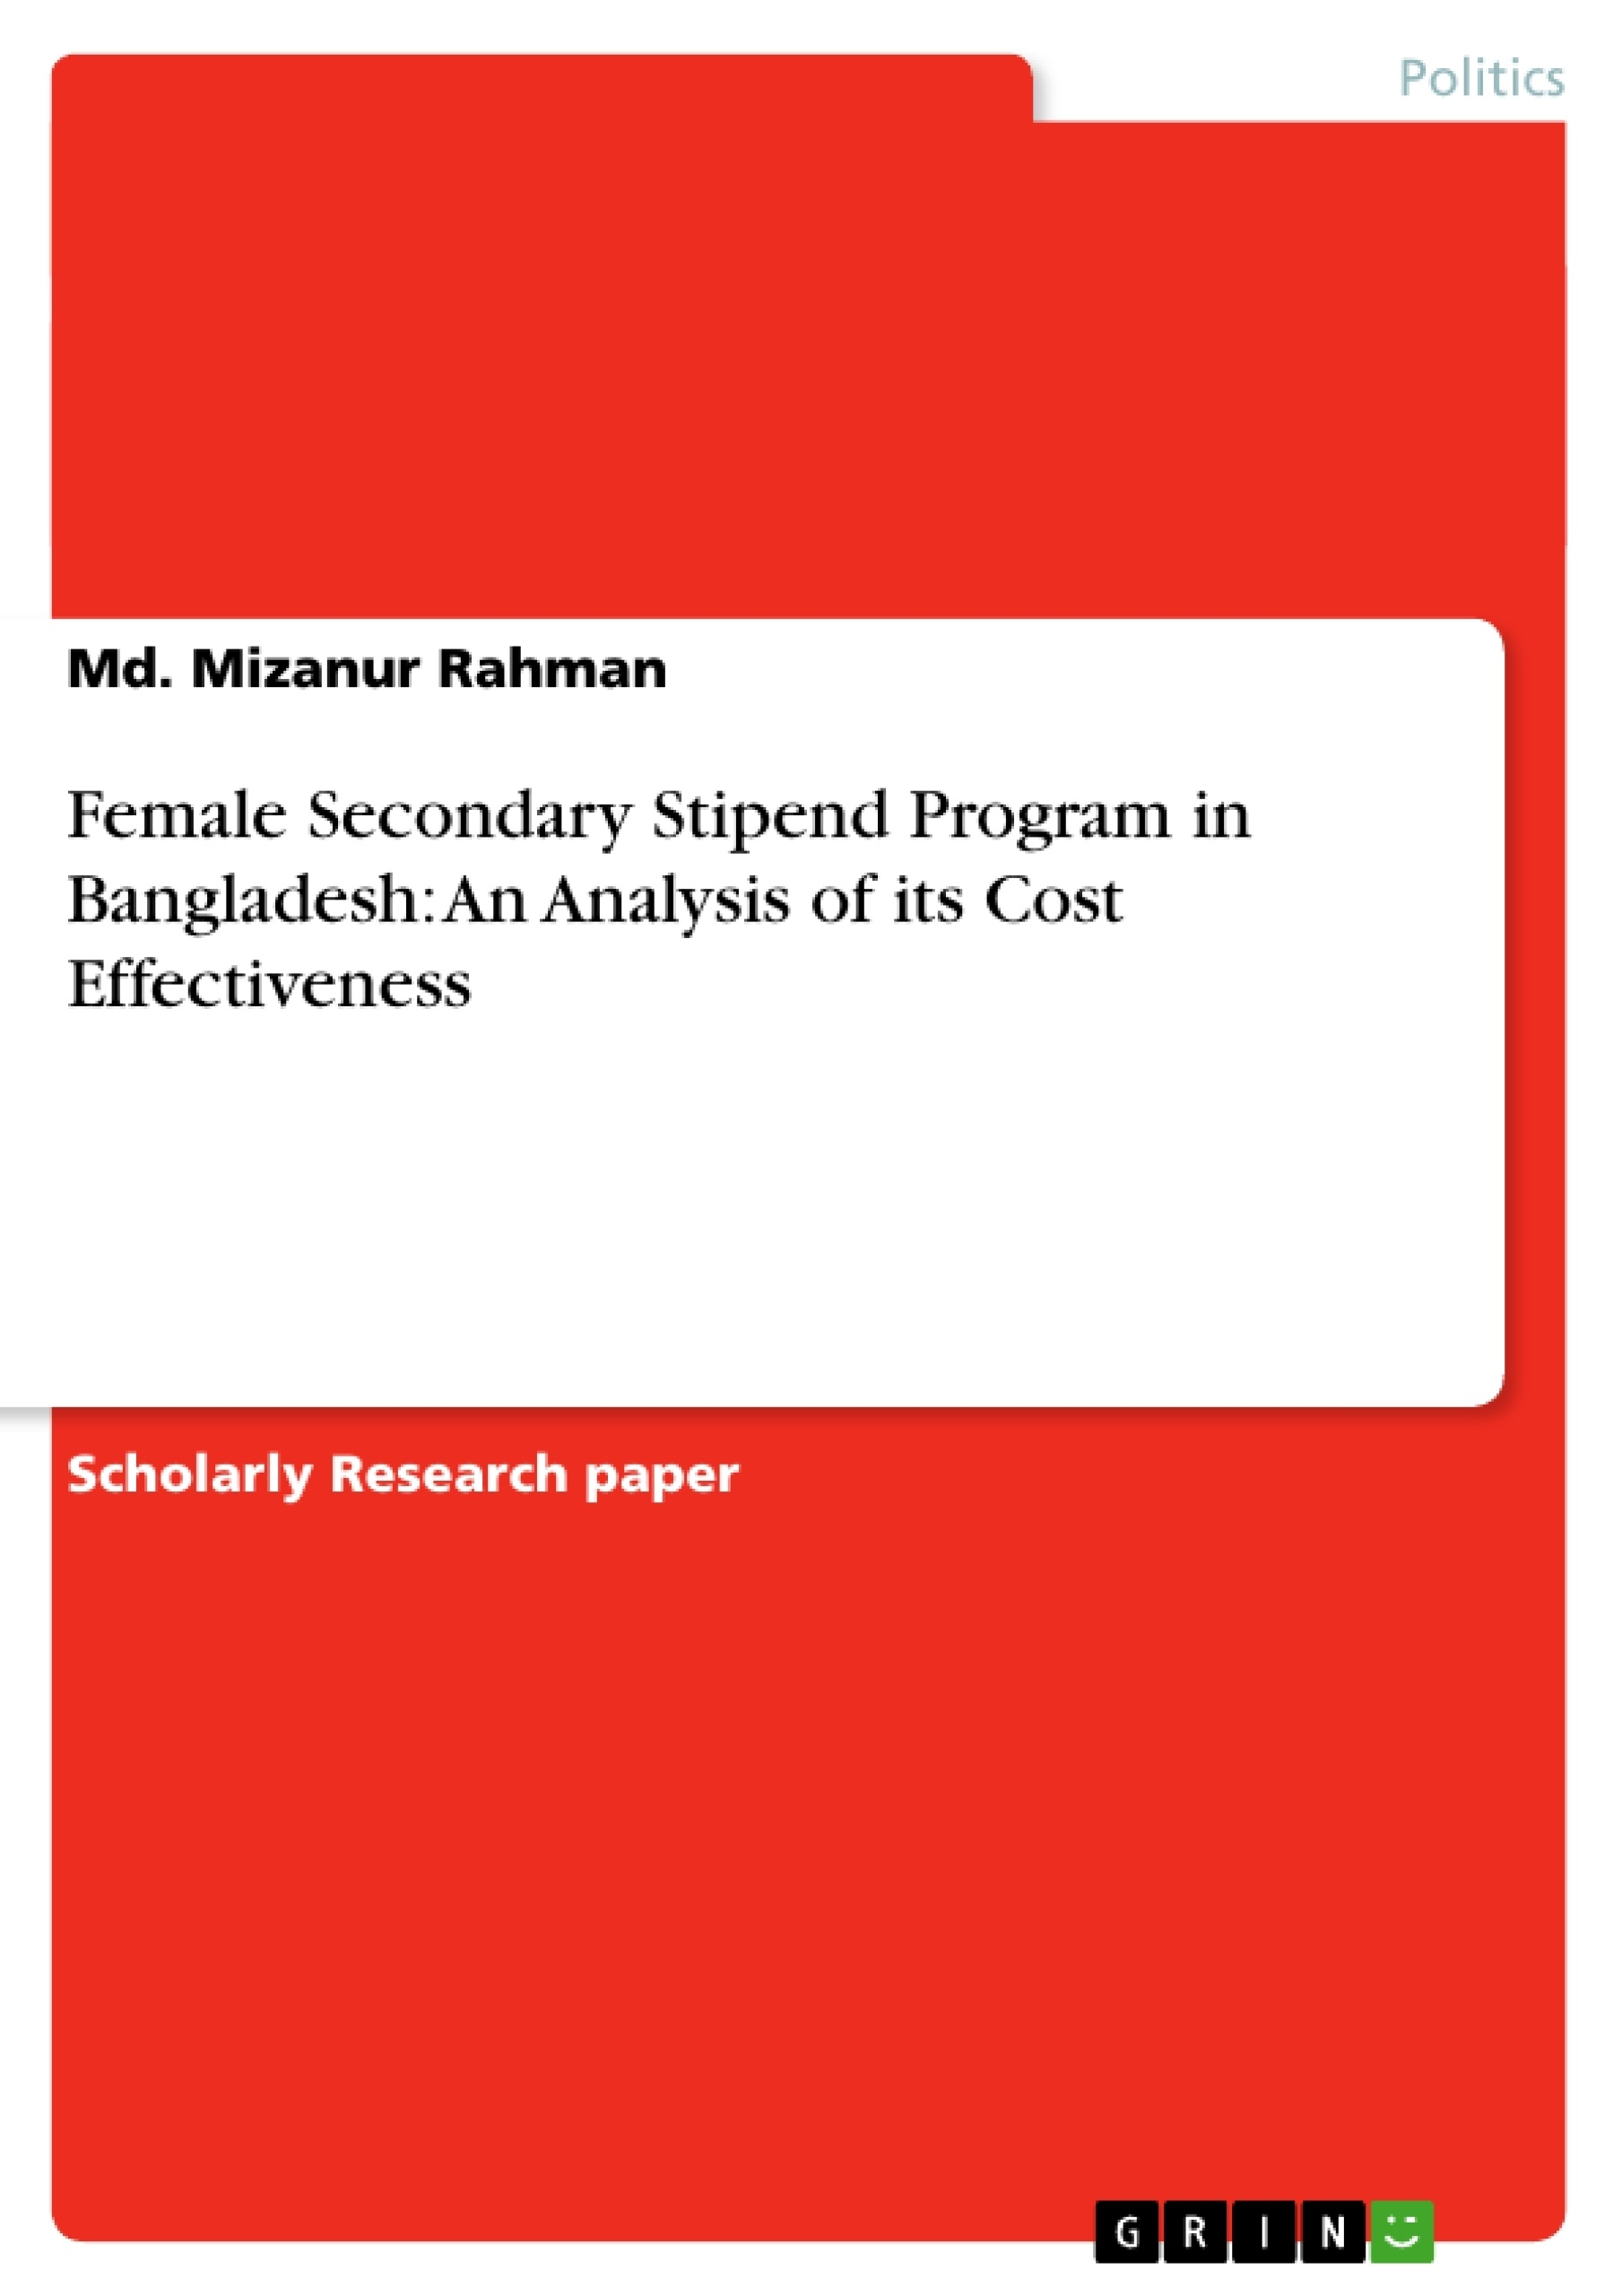 GRIN - Female Secondary Stipend Program in Bangladesh: An Analysis of its  Cost Effectiveness